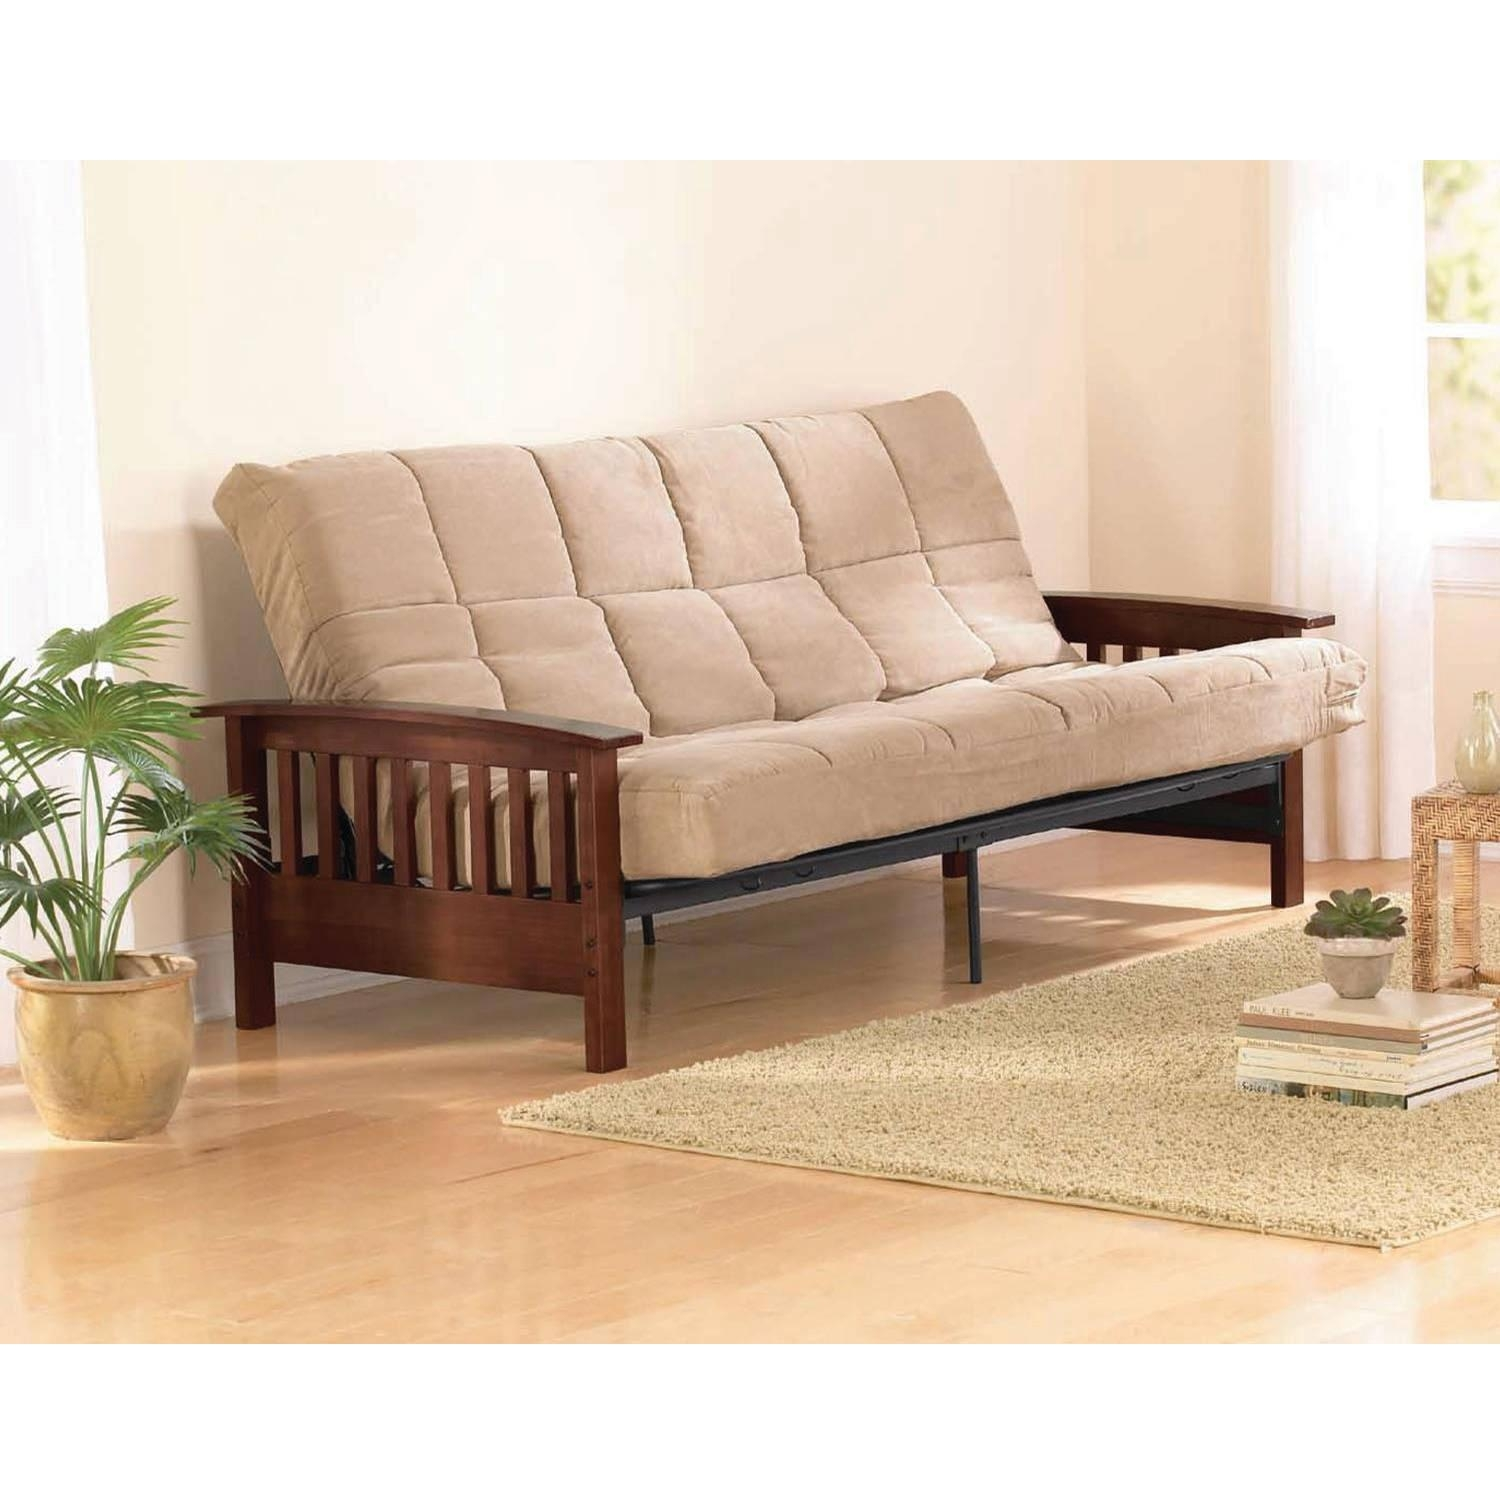 Atherton Home Taylor Convertible Futon Sofa Bed – Walmart With Wallmart Sofa (Image 5 of 20)